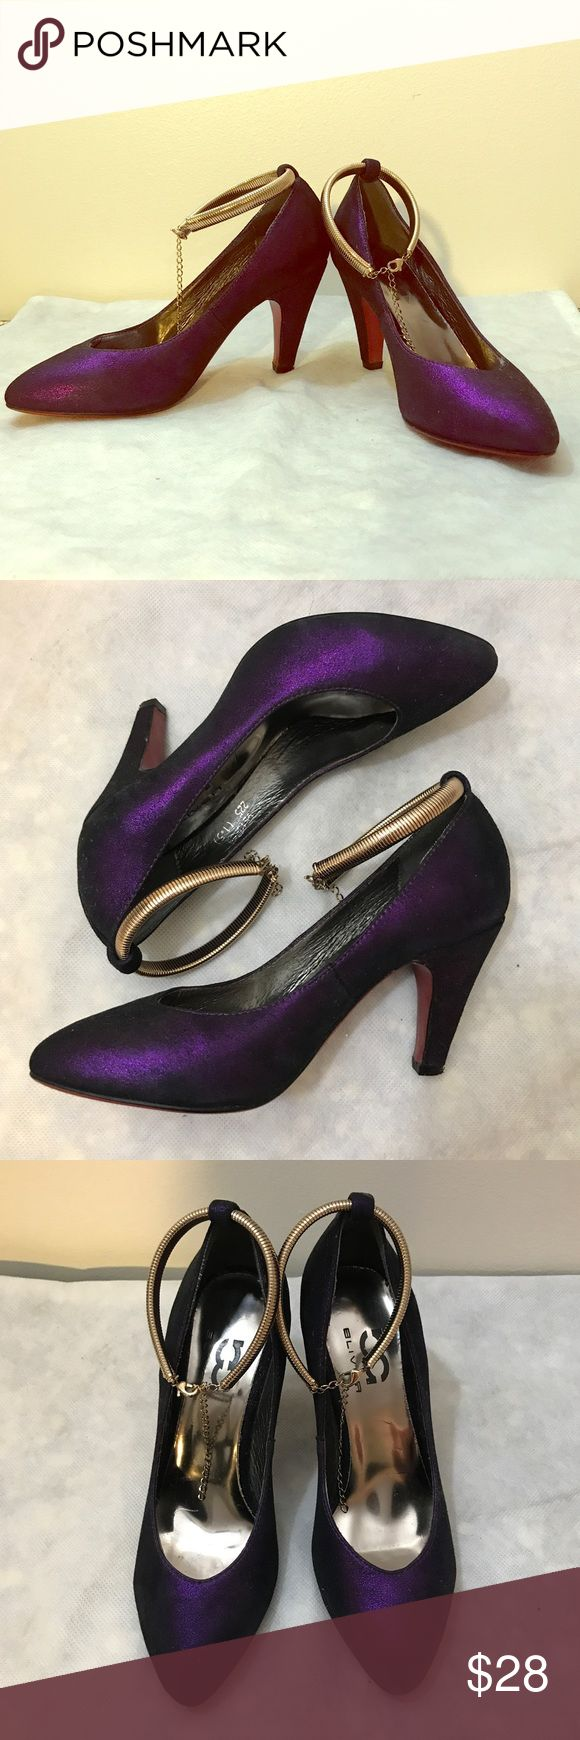 """Metallic purple heels with red sole & metal strap Striking Metallic purple heels with red soles(!) and golden metal ankle straps. Fabric uppers with mystic metallic purple colors. Amazing rose gold ankle snake chain ankle straps with adjustable length. And beautiful red soles. 3.5"""" heels and very comfortable. Never worn. In great condition. Flawless uppers. Slight scuff on soles due to try-on. Bliver Shoes Heels"""